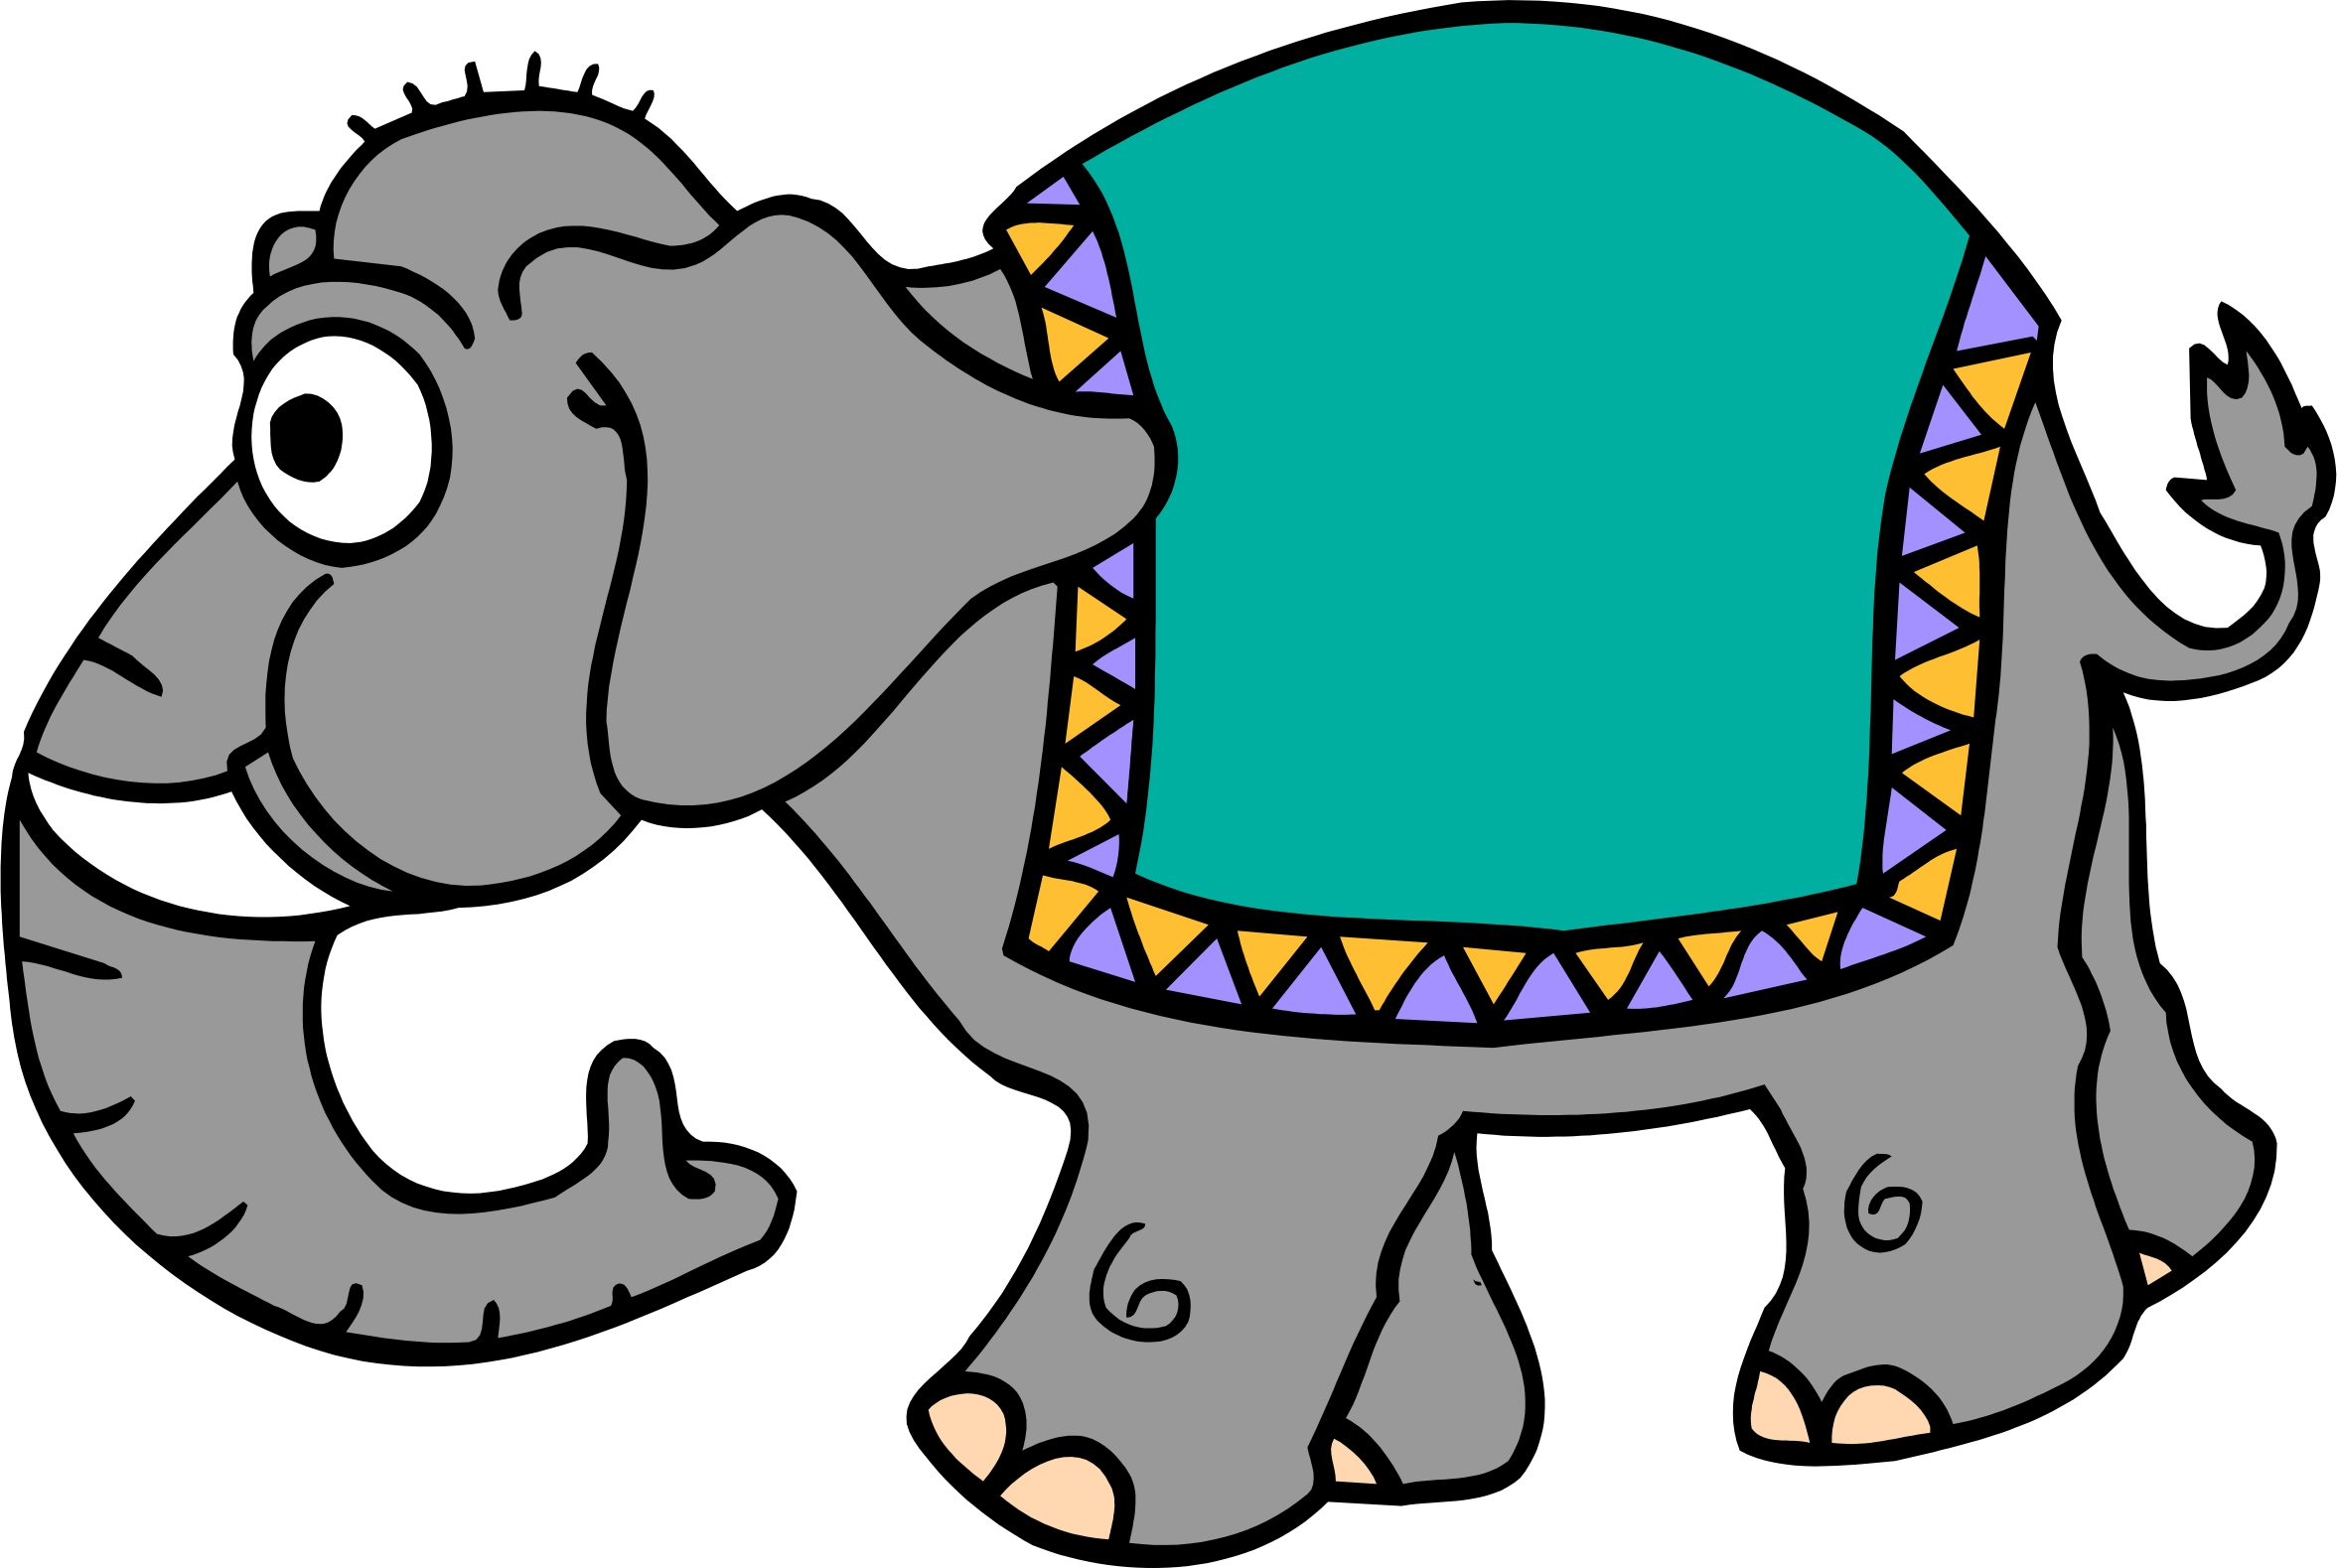 Cartoon Elephants Images - Cliparts.co